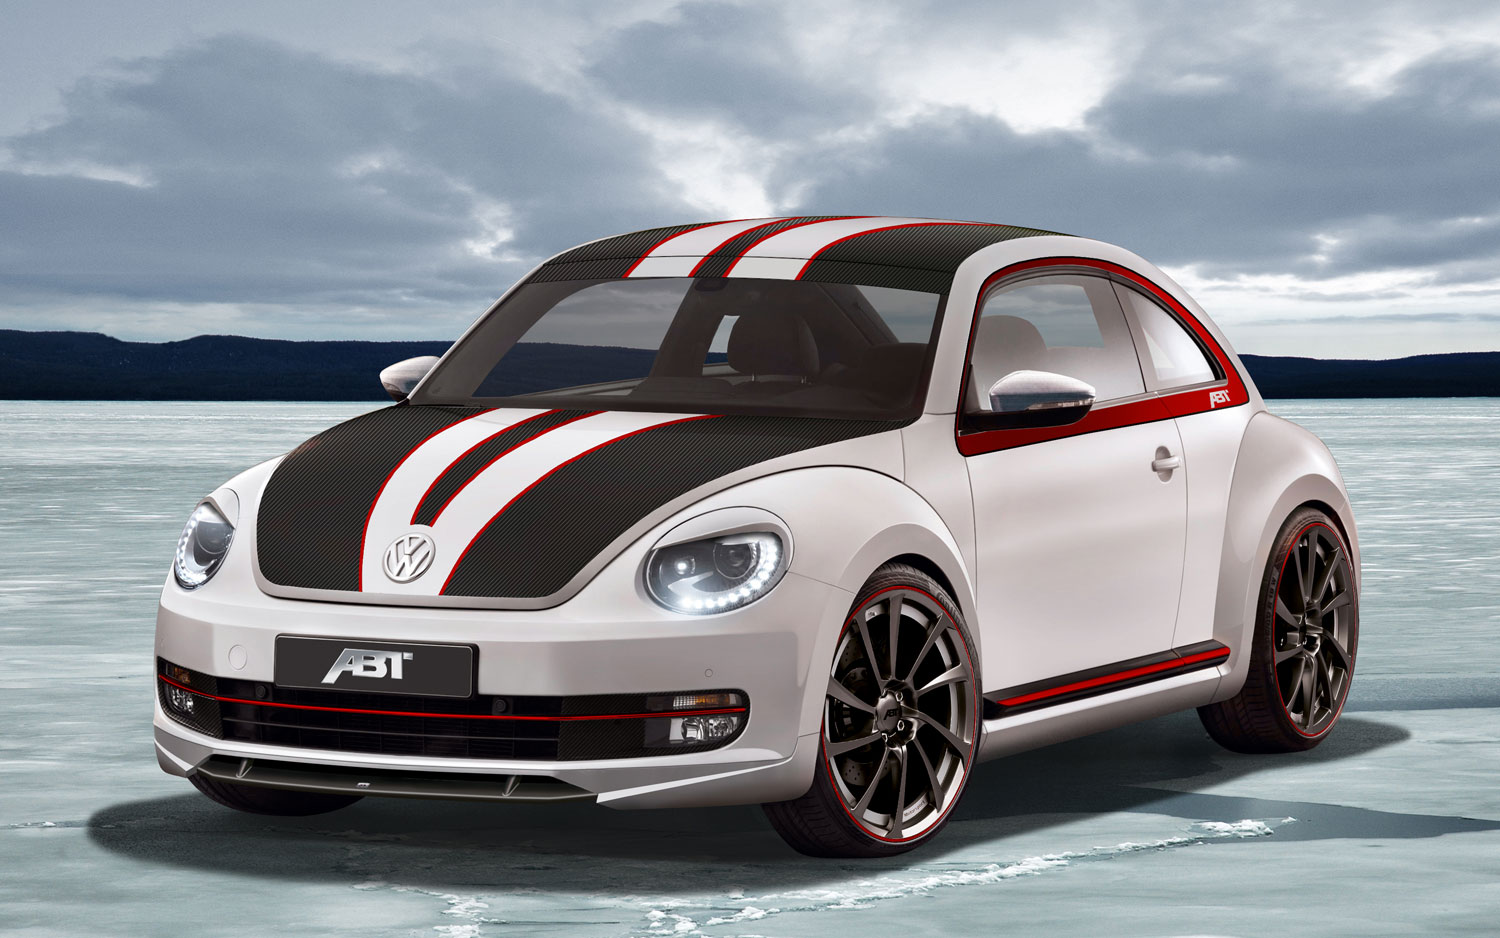 VW Beetle Accessories >> Abt Introduces New Volkswagen Beetle Styling Performance